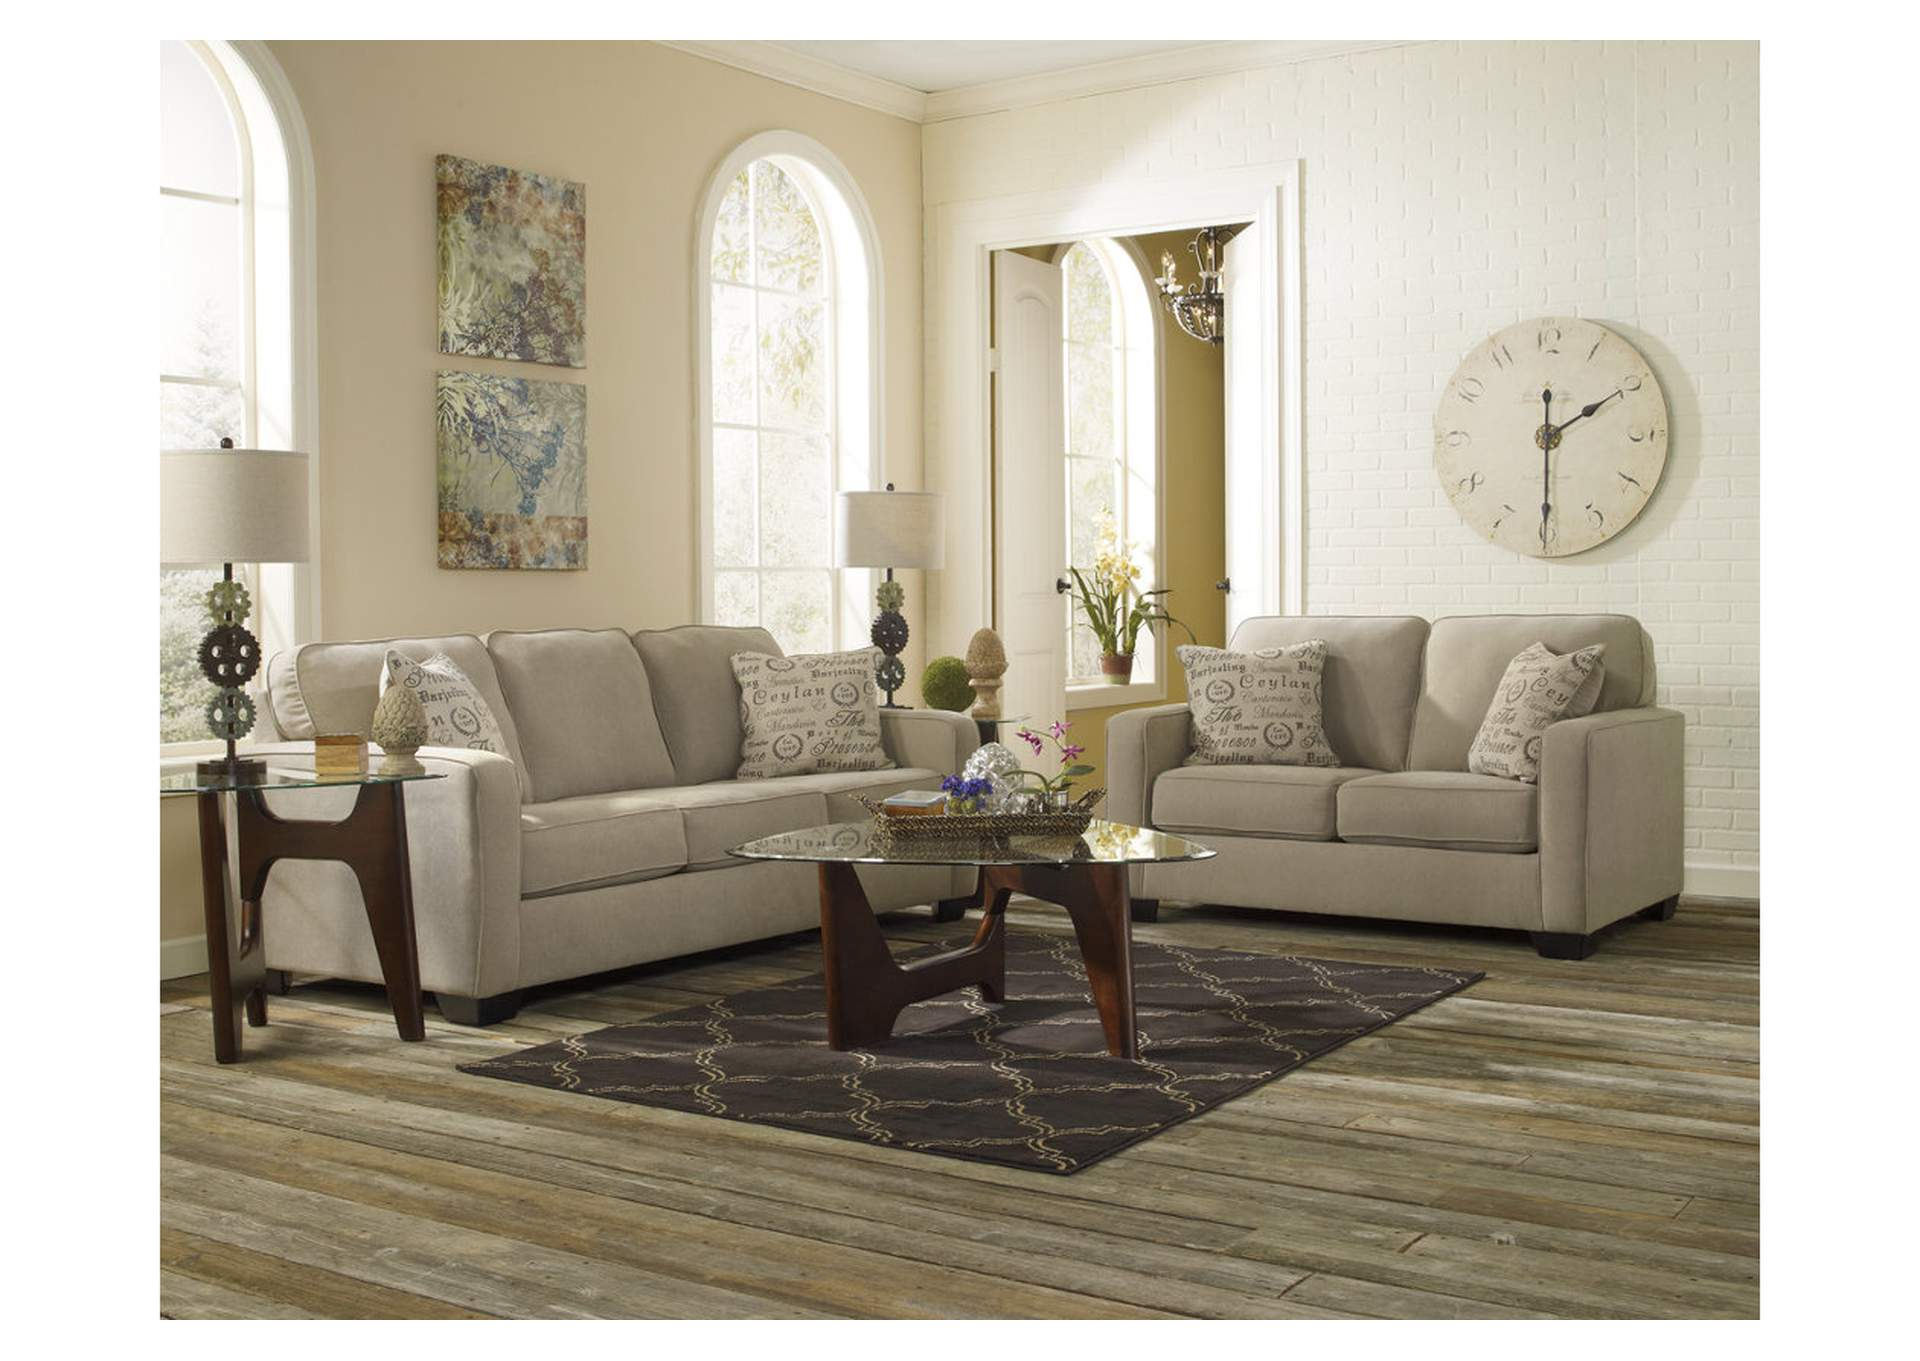 Living Room Sets Indianapolis audrey's place furniture - indianapolis, in